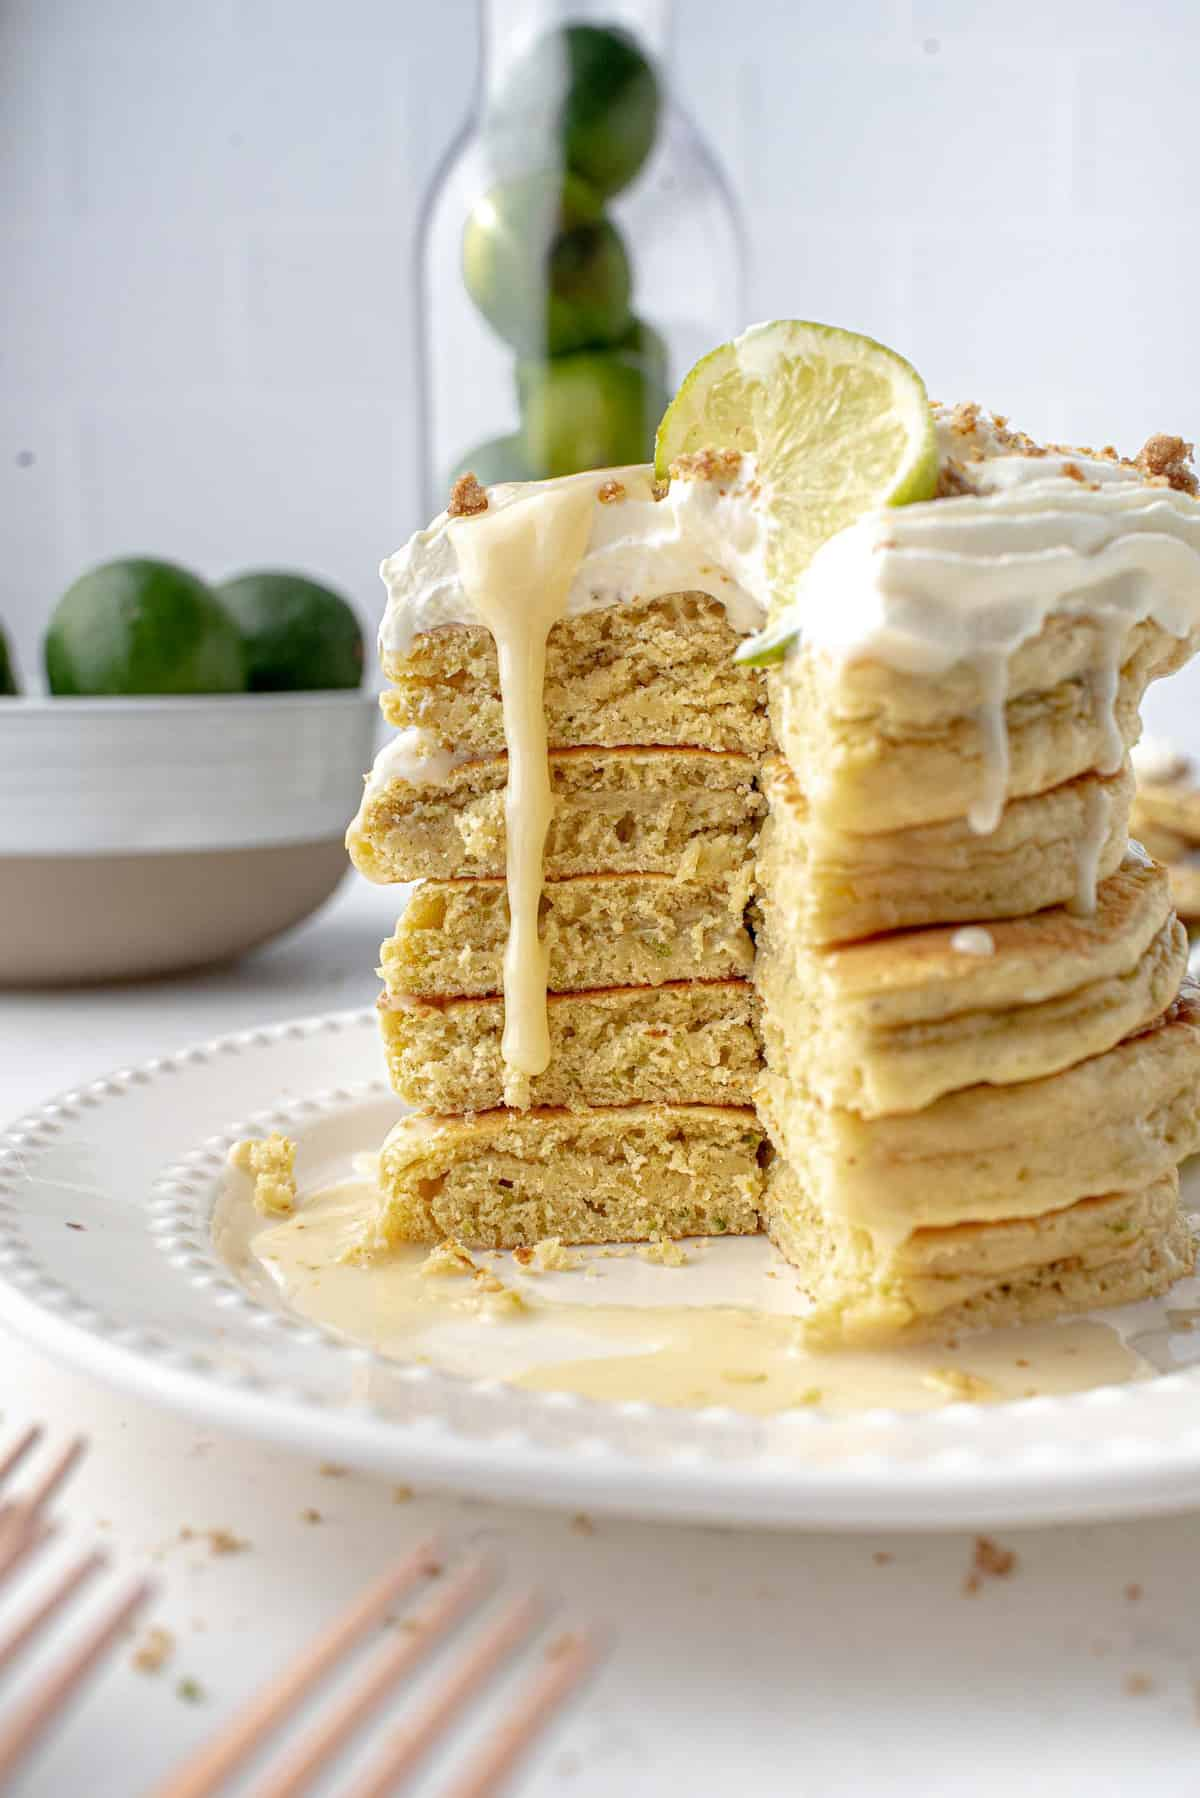 Stack of pancake with lime syrup dripping down cut portion of pancakes.